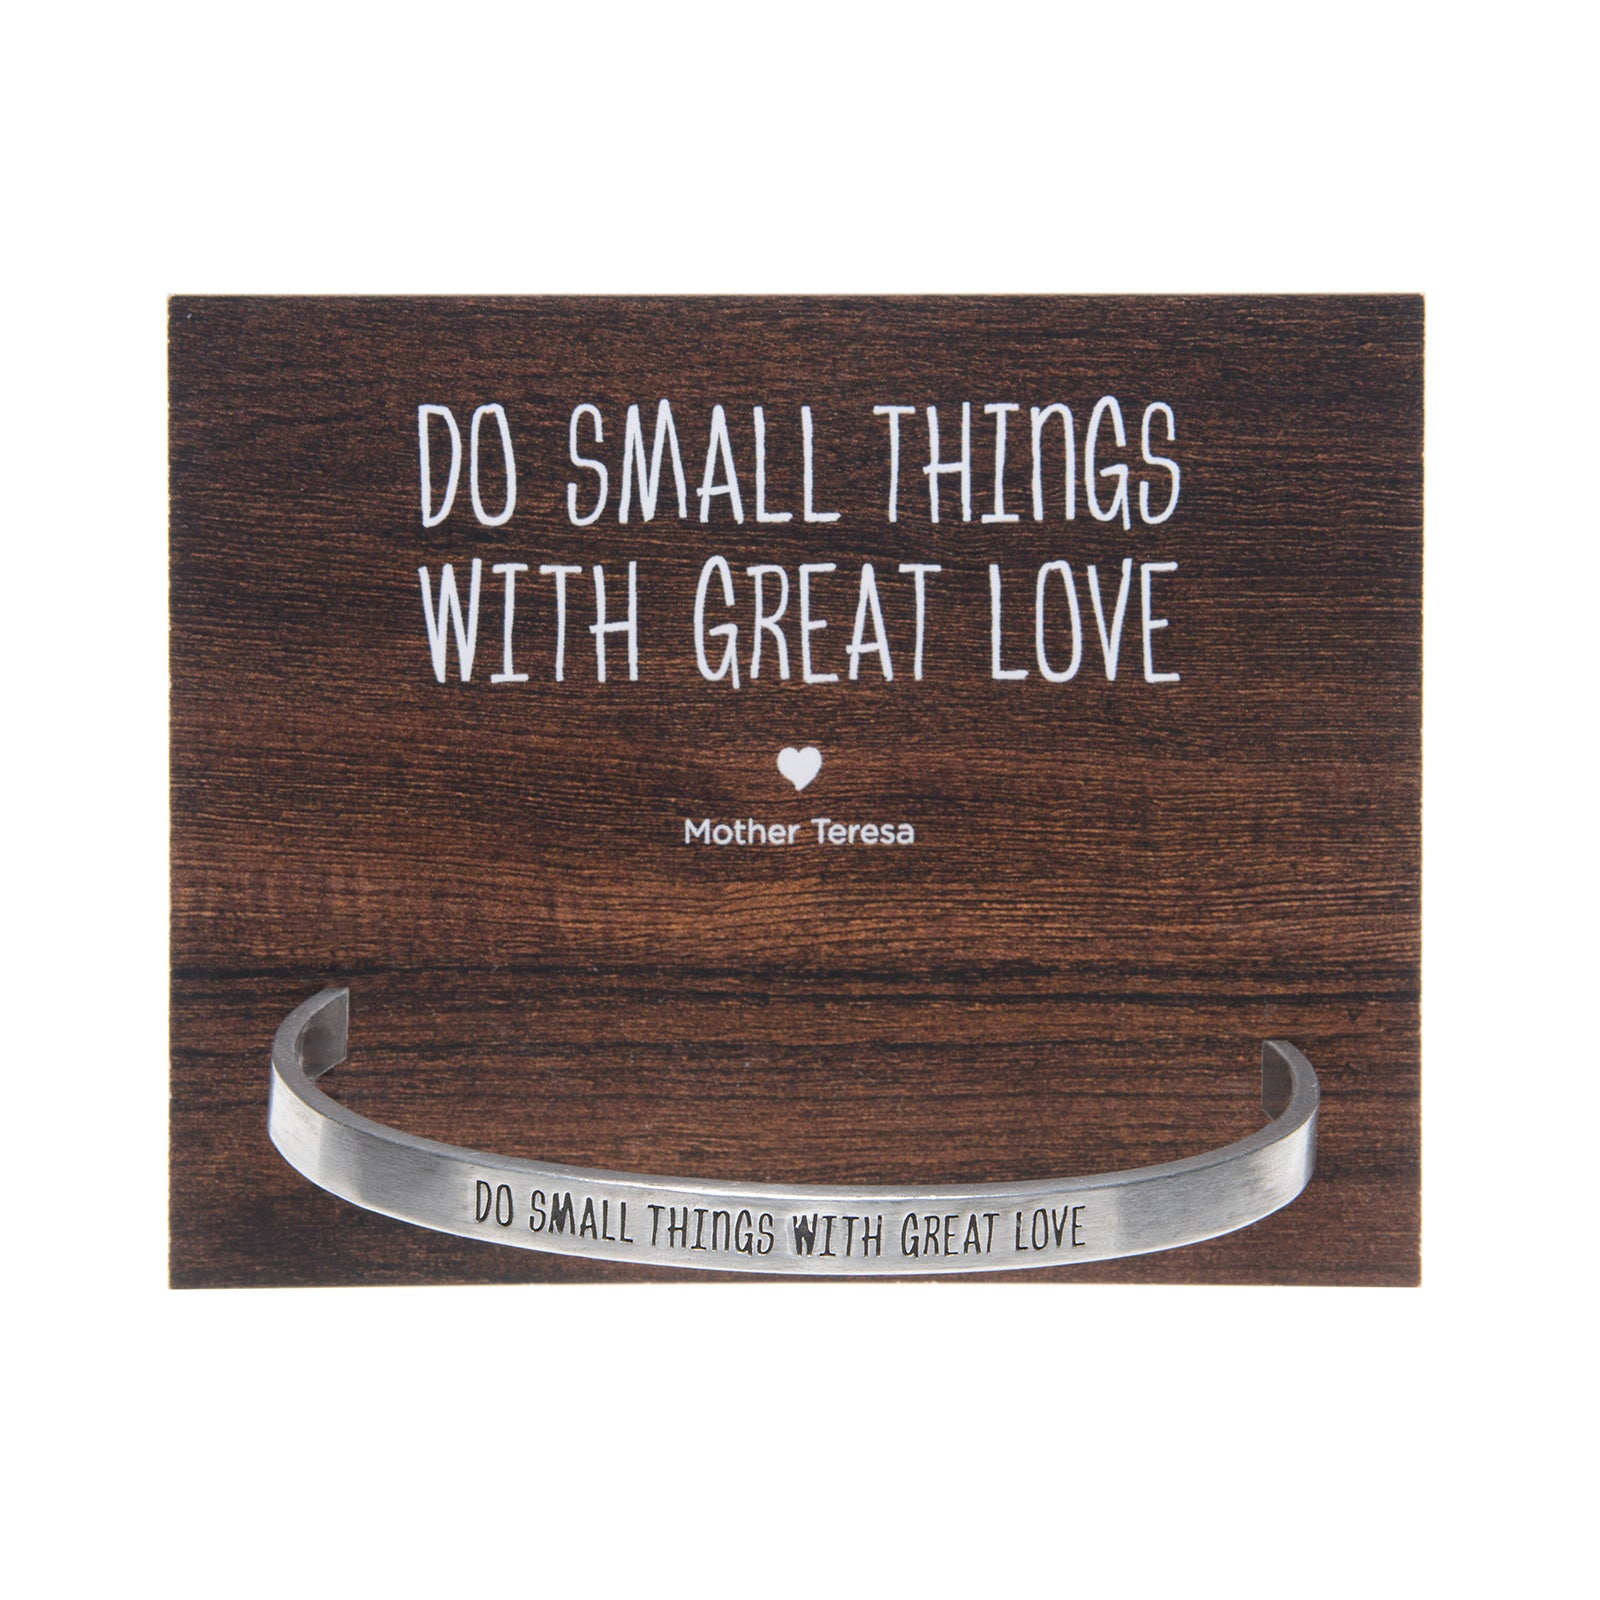 Do Small Things with Great Love Quotable Cuff - Whitney Howard Designs